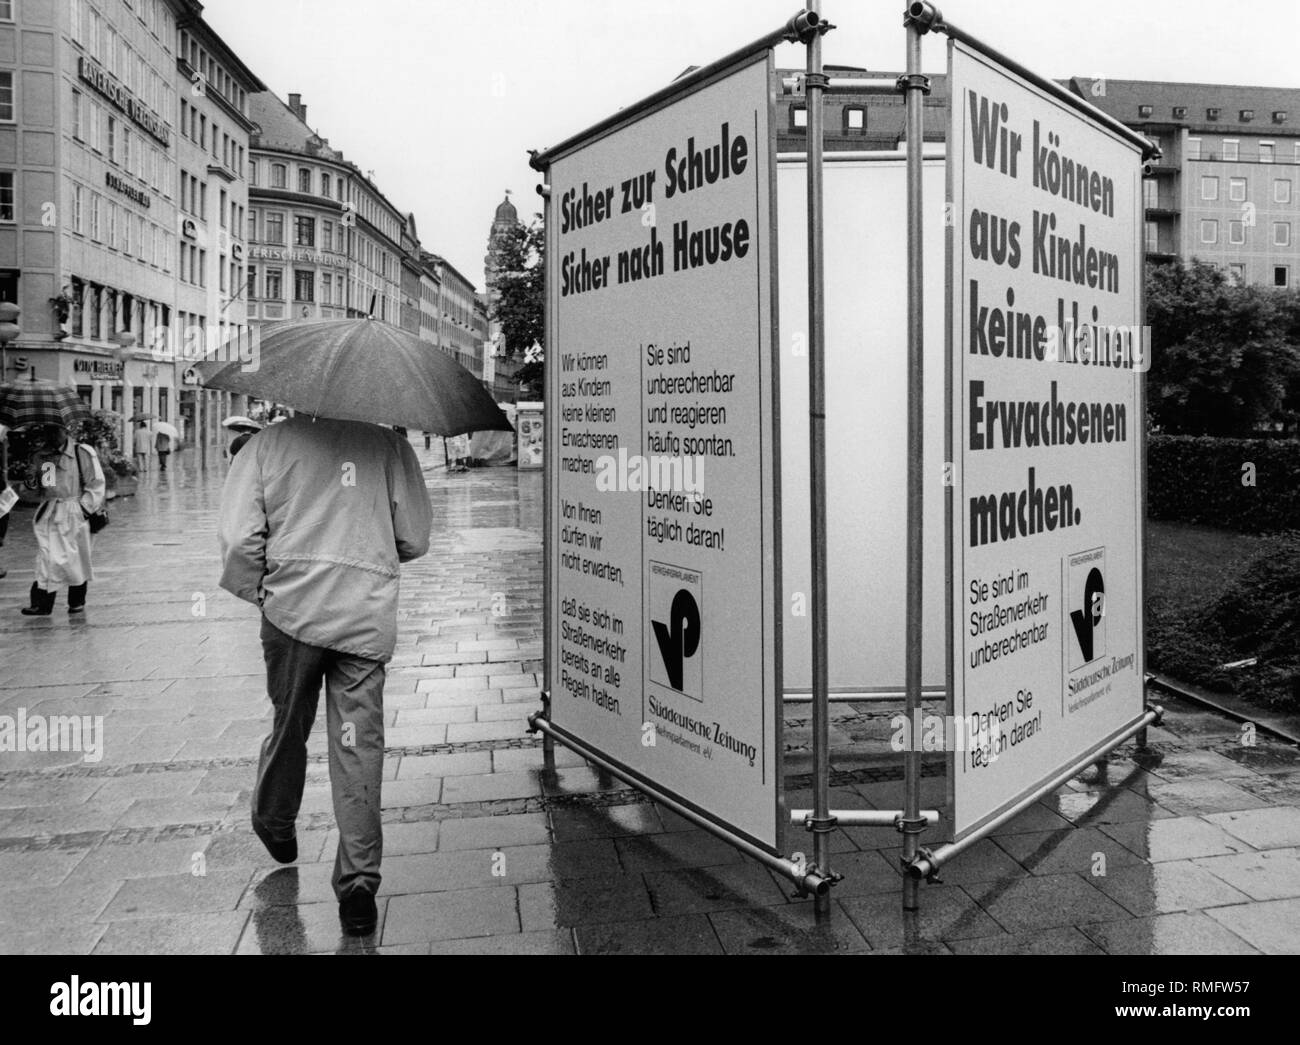 Sicher Safe Road Safety Poster Black And White Stock Photos Images Alamy